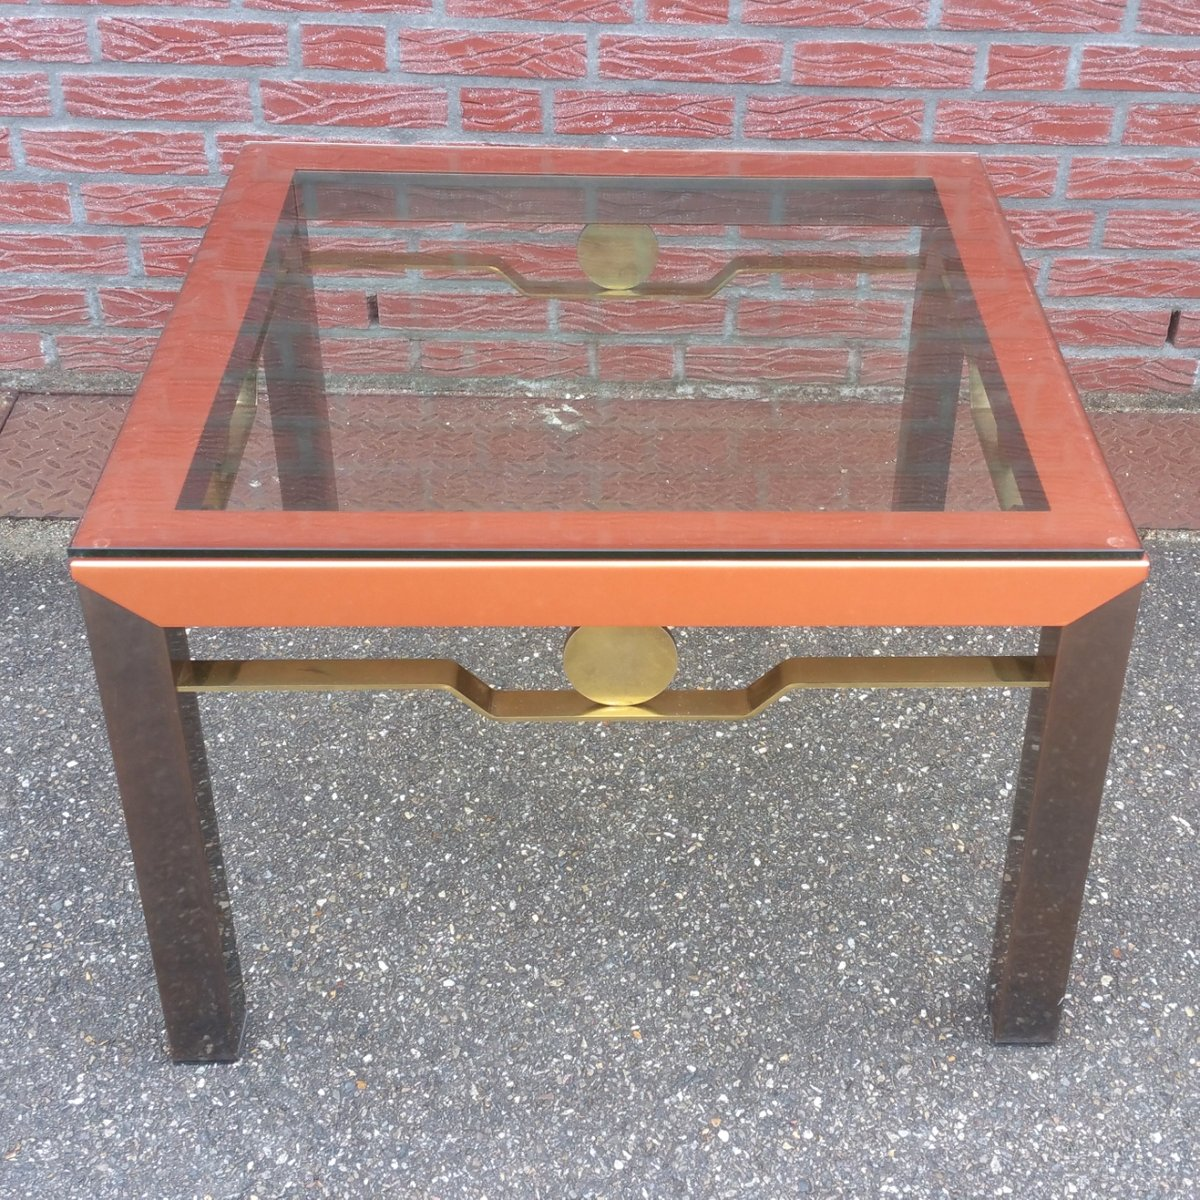 Retro Style Coffee Table Australia: Vintage Hollywood Regency Coffee Table With Glass Top For